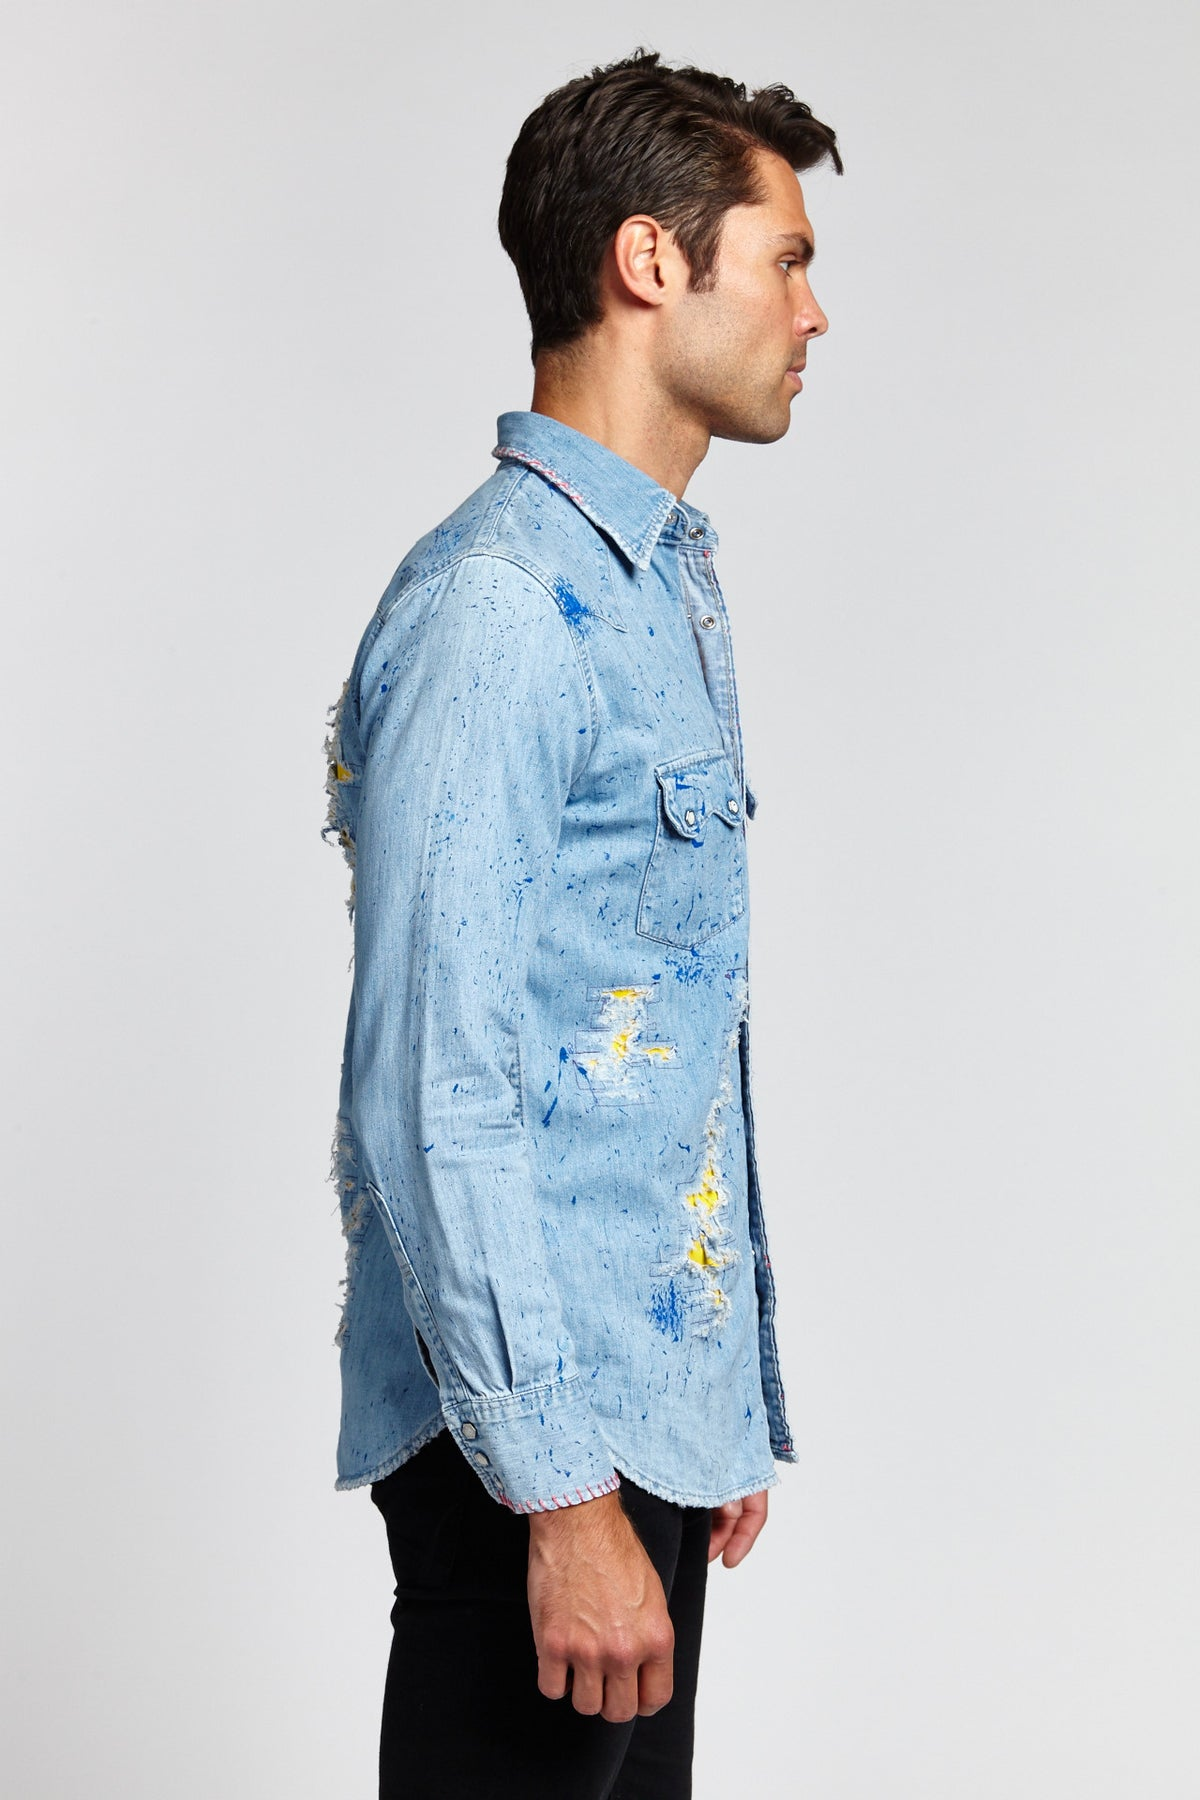 FADED DENIM BLUE LONG SLEEVE MEDIUM BUTTON UP (ONE OF A KIND)-SHIRTS-Mundane Official-S-Mundane Official